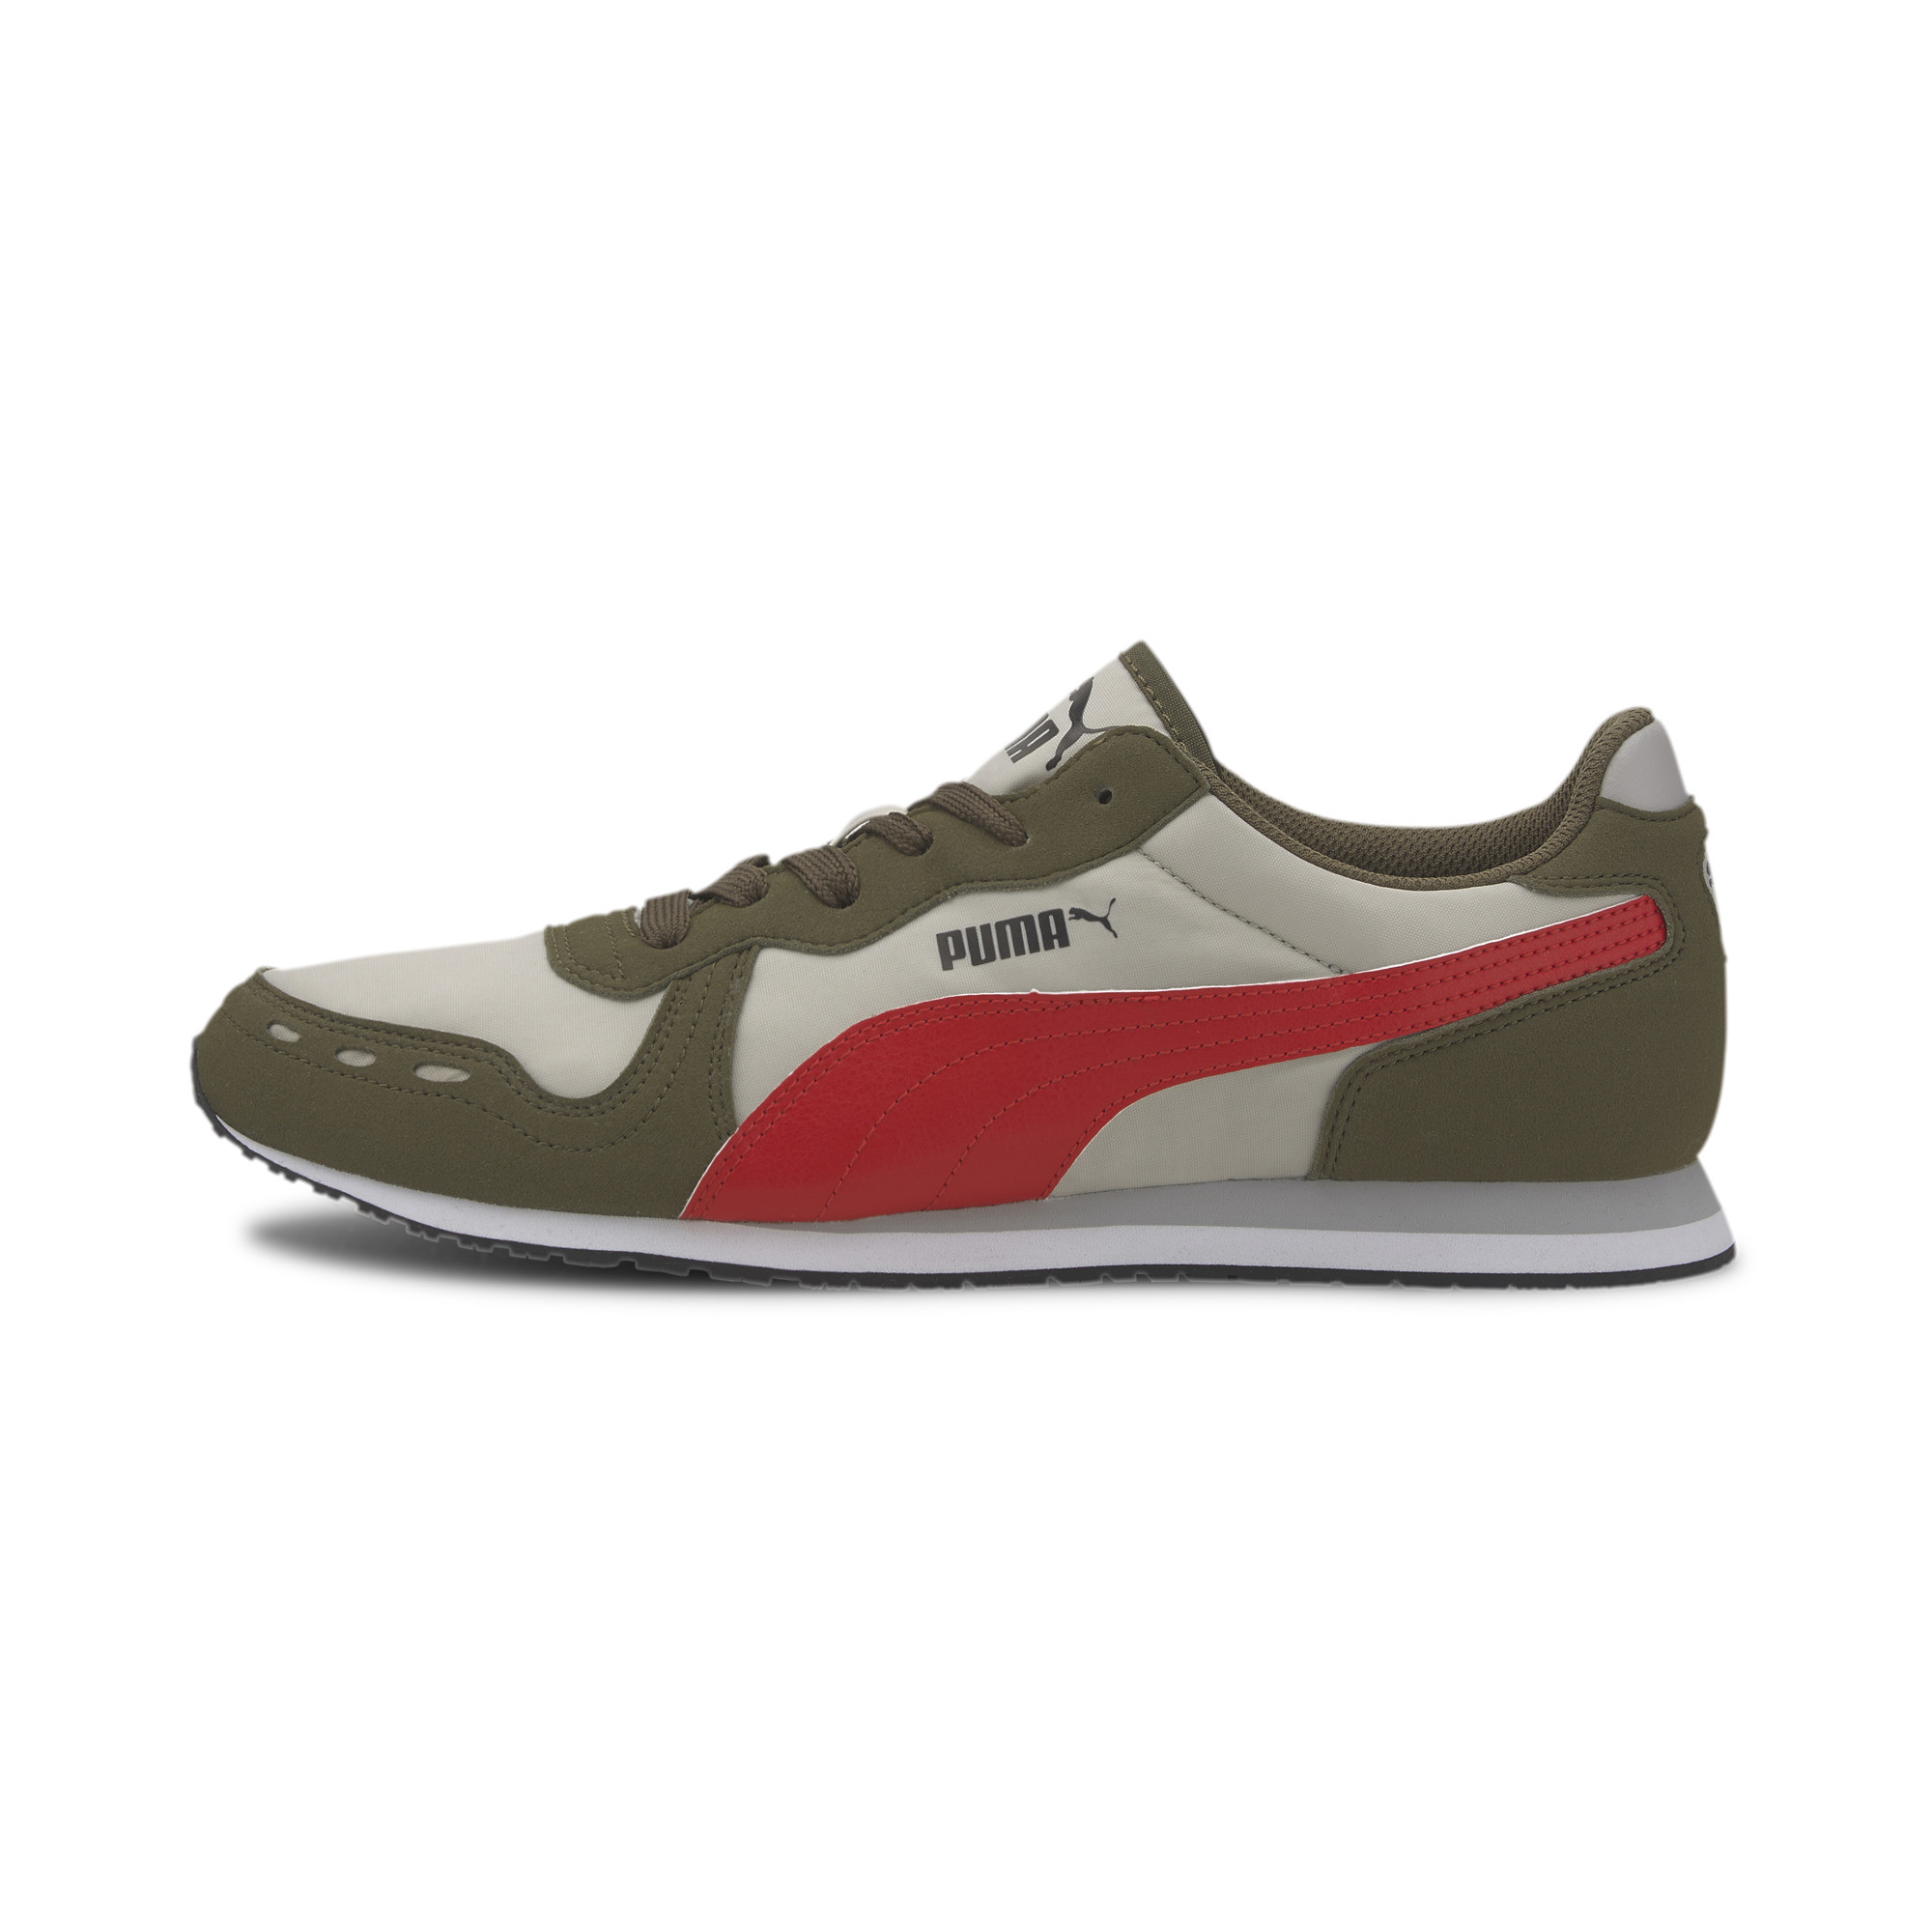 PUMA-Men-039-s-Cabana-Run-Sneakers thumbnail 18